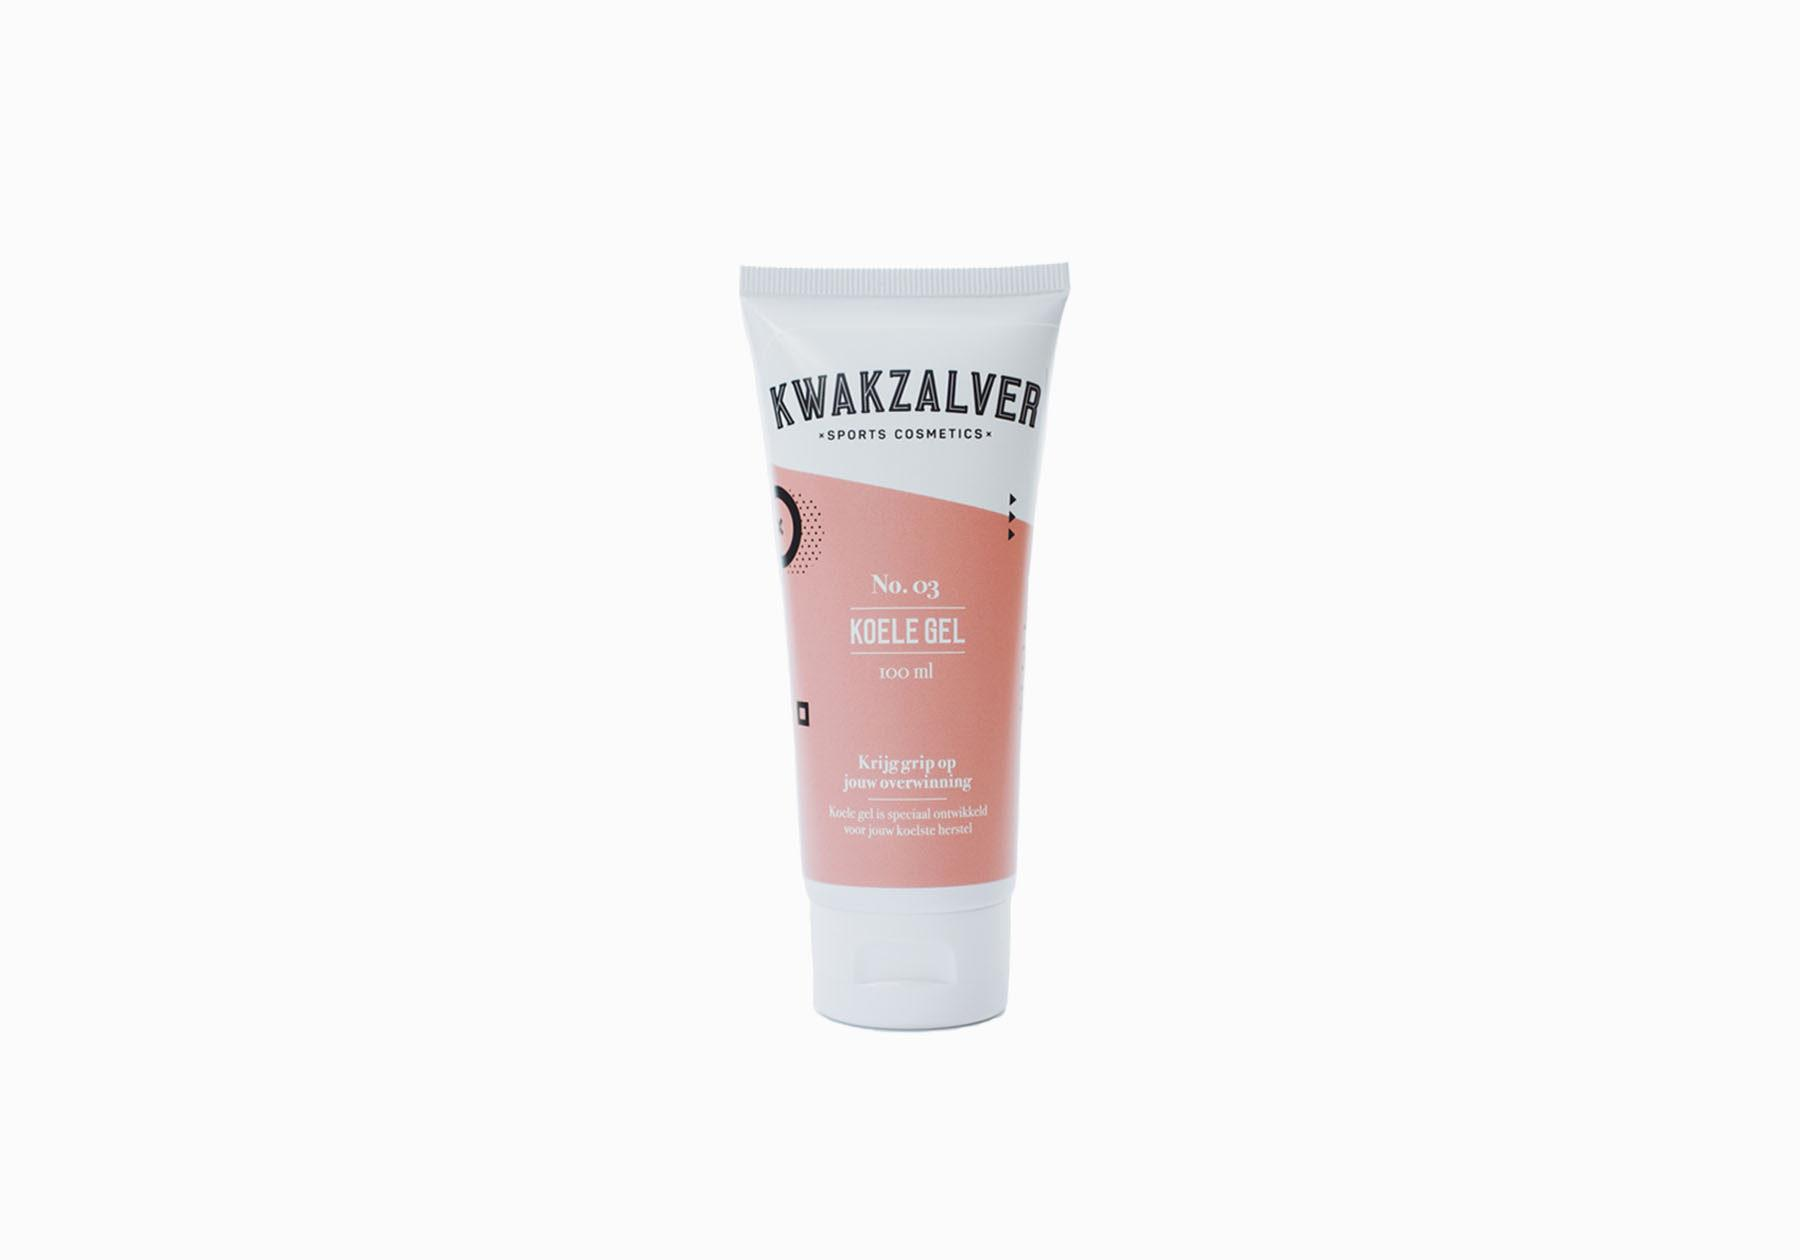 Kwakzalver Koele Gel | Cooling-down Gel